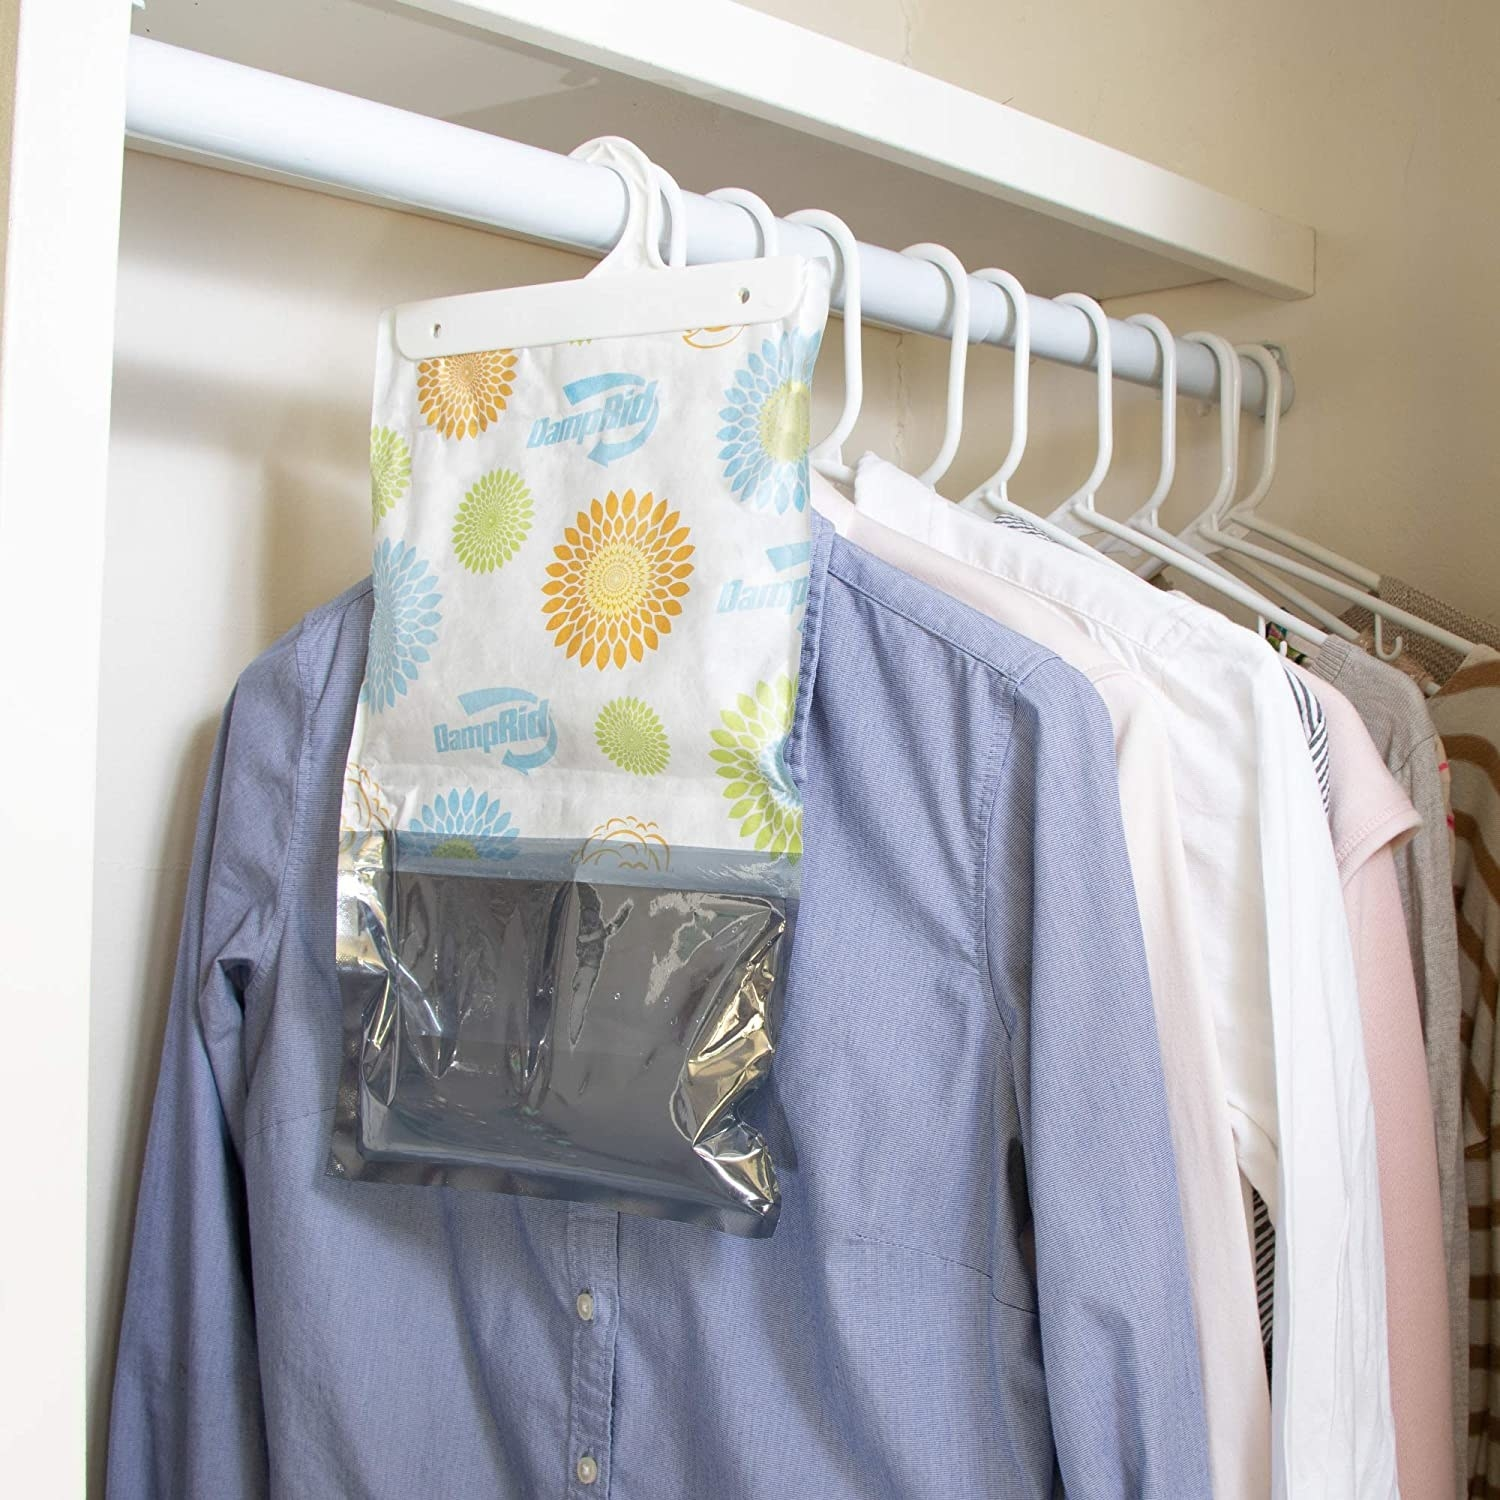 A moisture-absorbing bag hanging on a closet rod in front of shirts